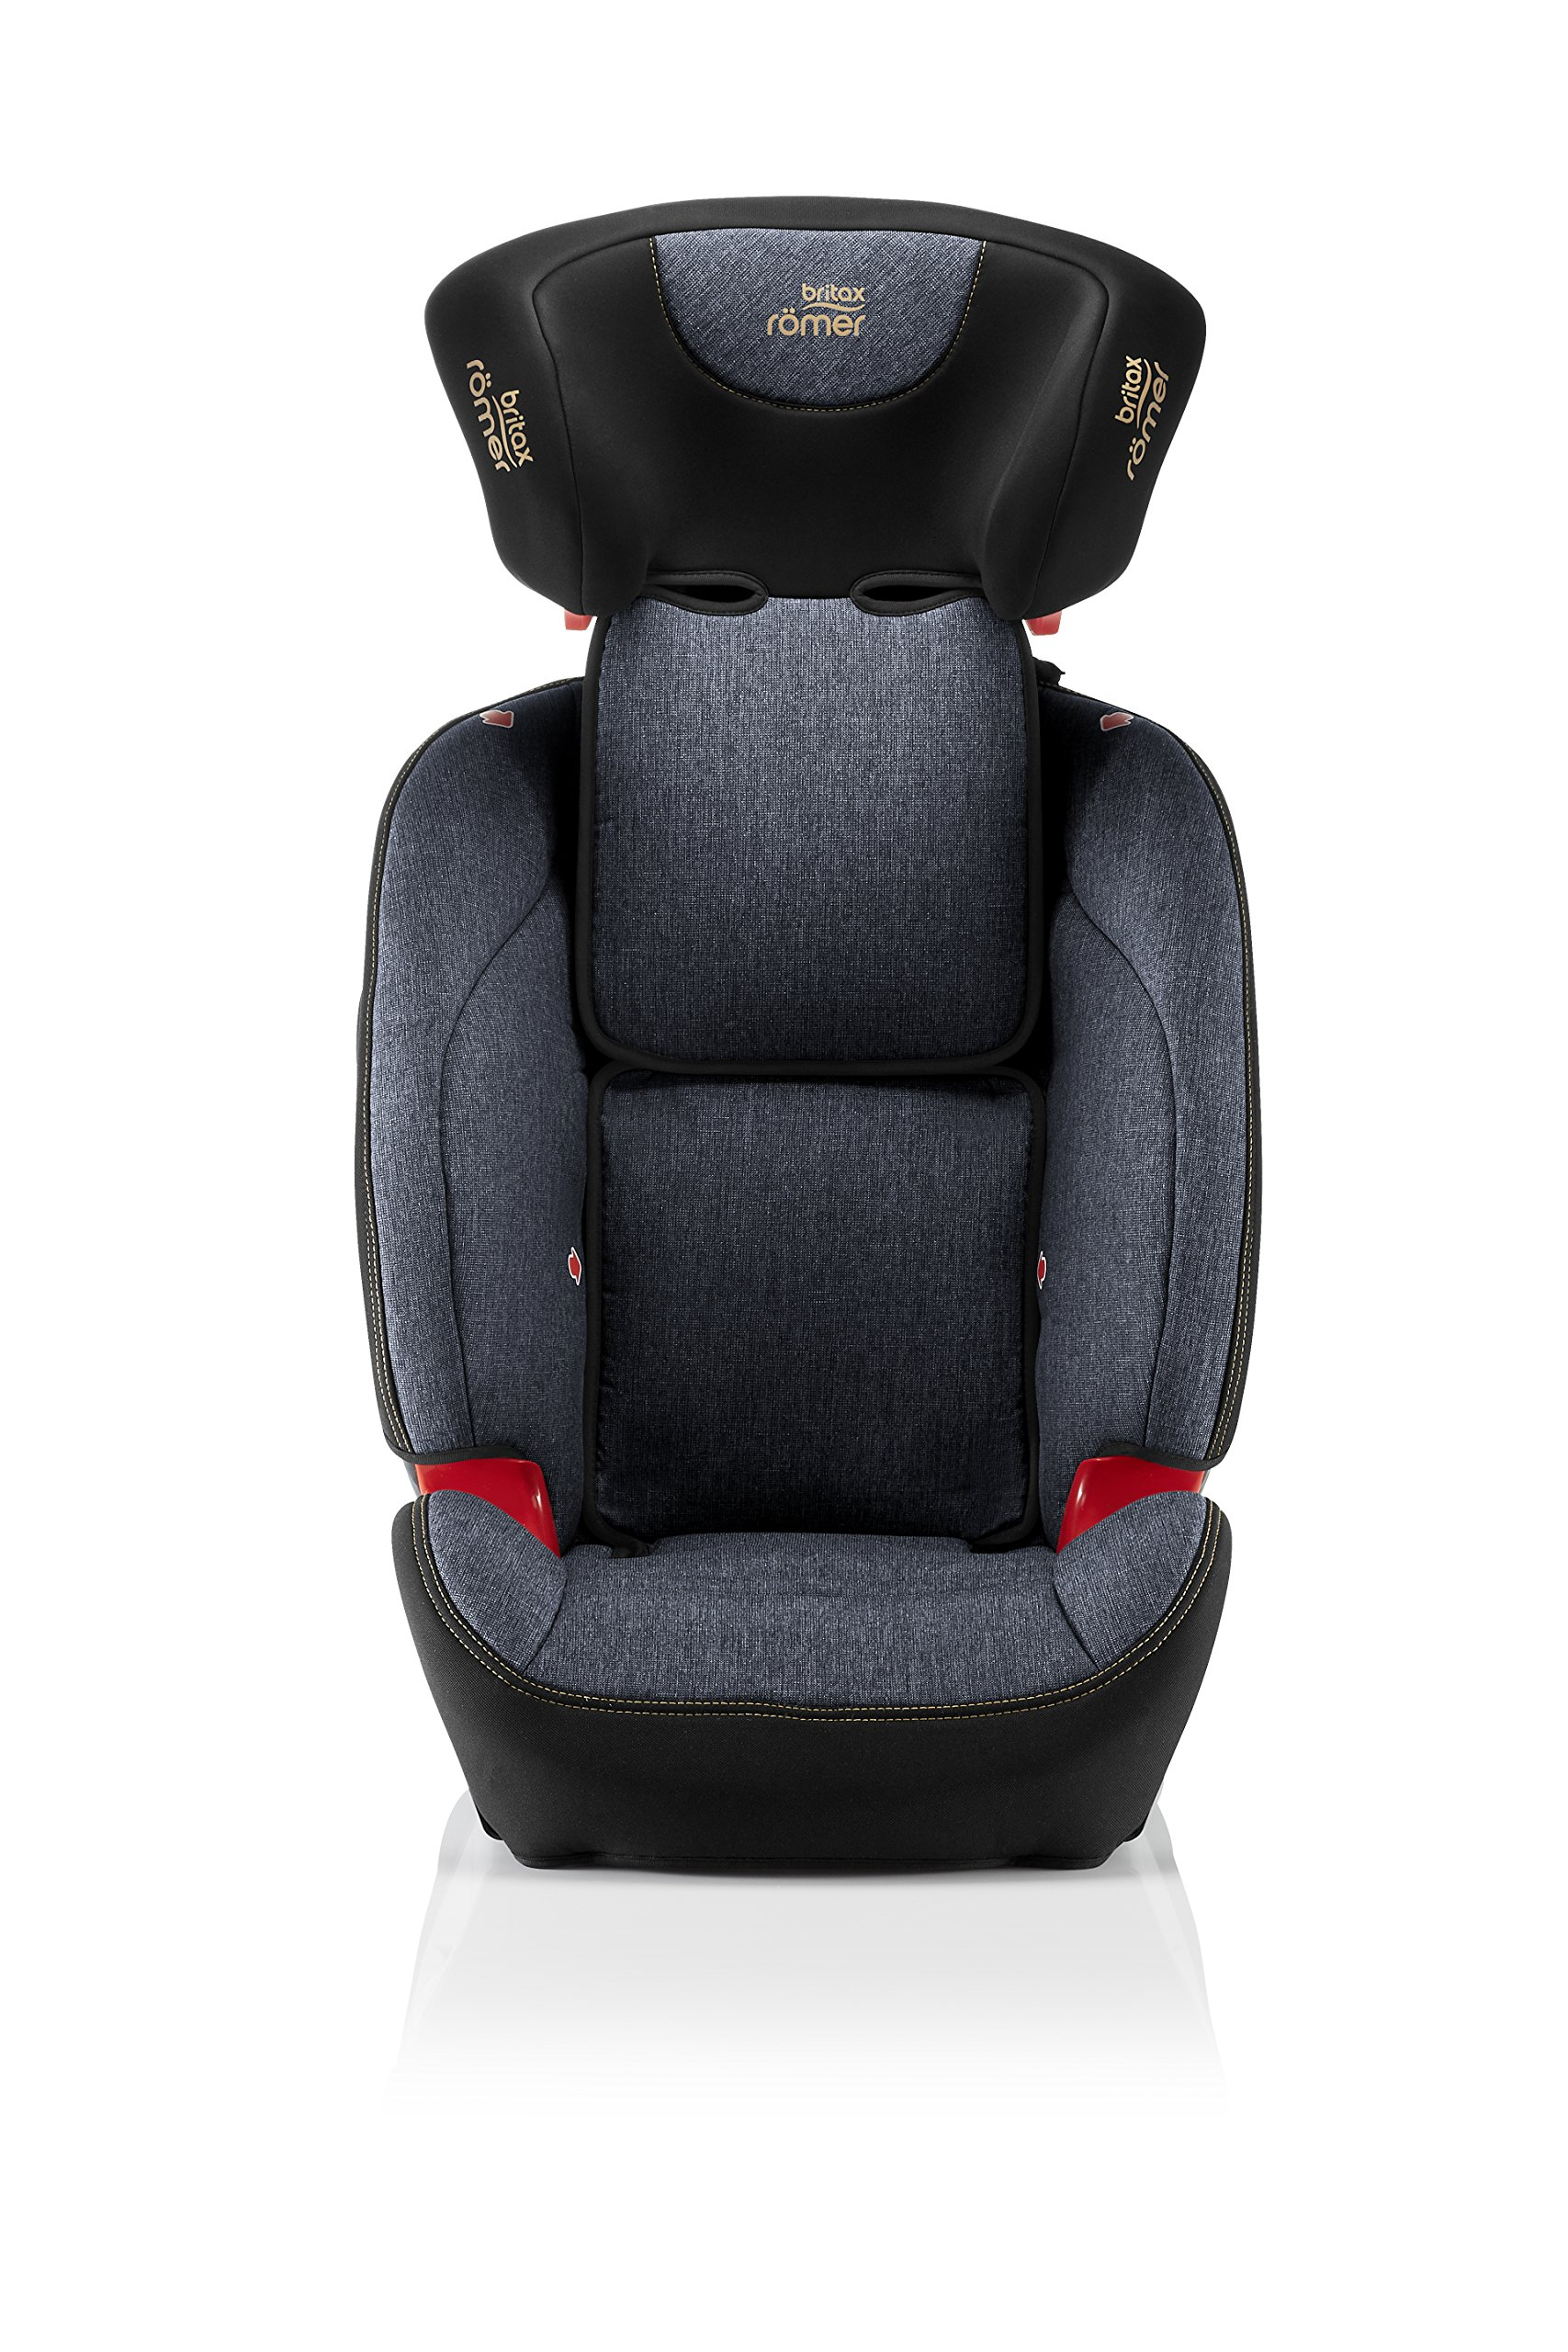 Britax Römer EVOLVA 1-2-3 SL SICT Group 1-2-3 (9-36kg) Car Seat - Blue Marble  This EVOLVA 1-2-3 SL SICT will come in a Blue Marble design cover which is made from a more premium fabric with extra detailing Enhanced Side Impact Protection (SICT) minimises the force of an impact in a side collision CLICK & SAFE audible harness system for that extra reassurance when securing your child in the seat 6